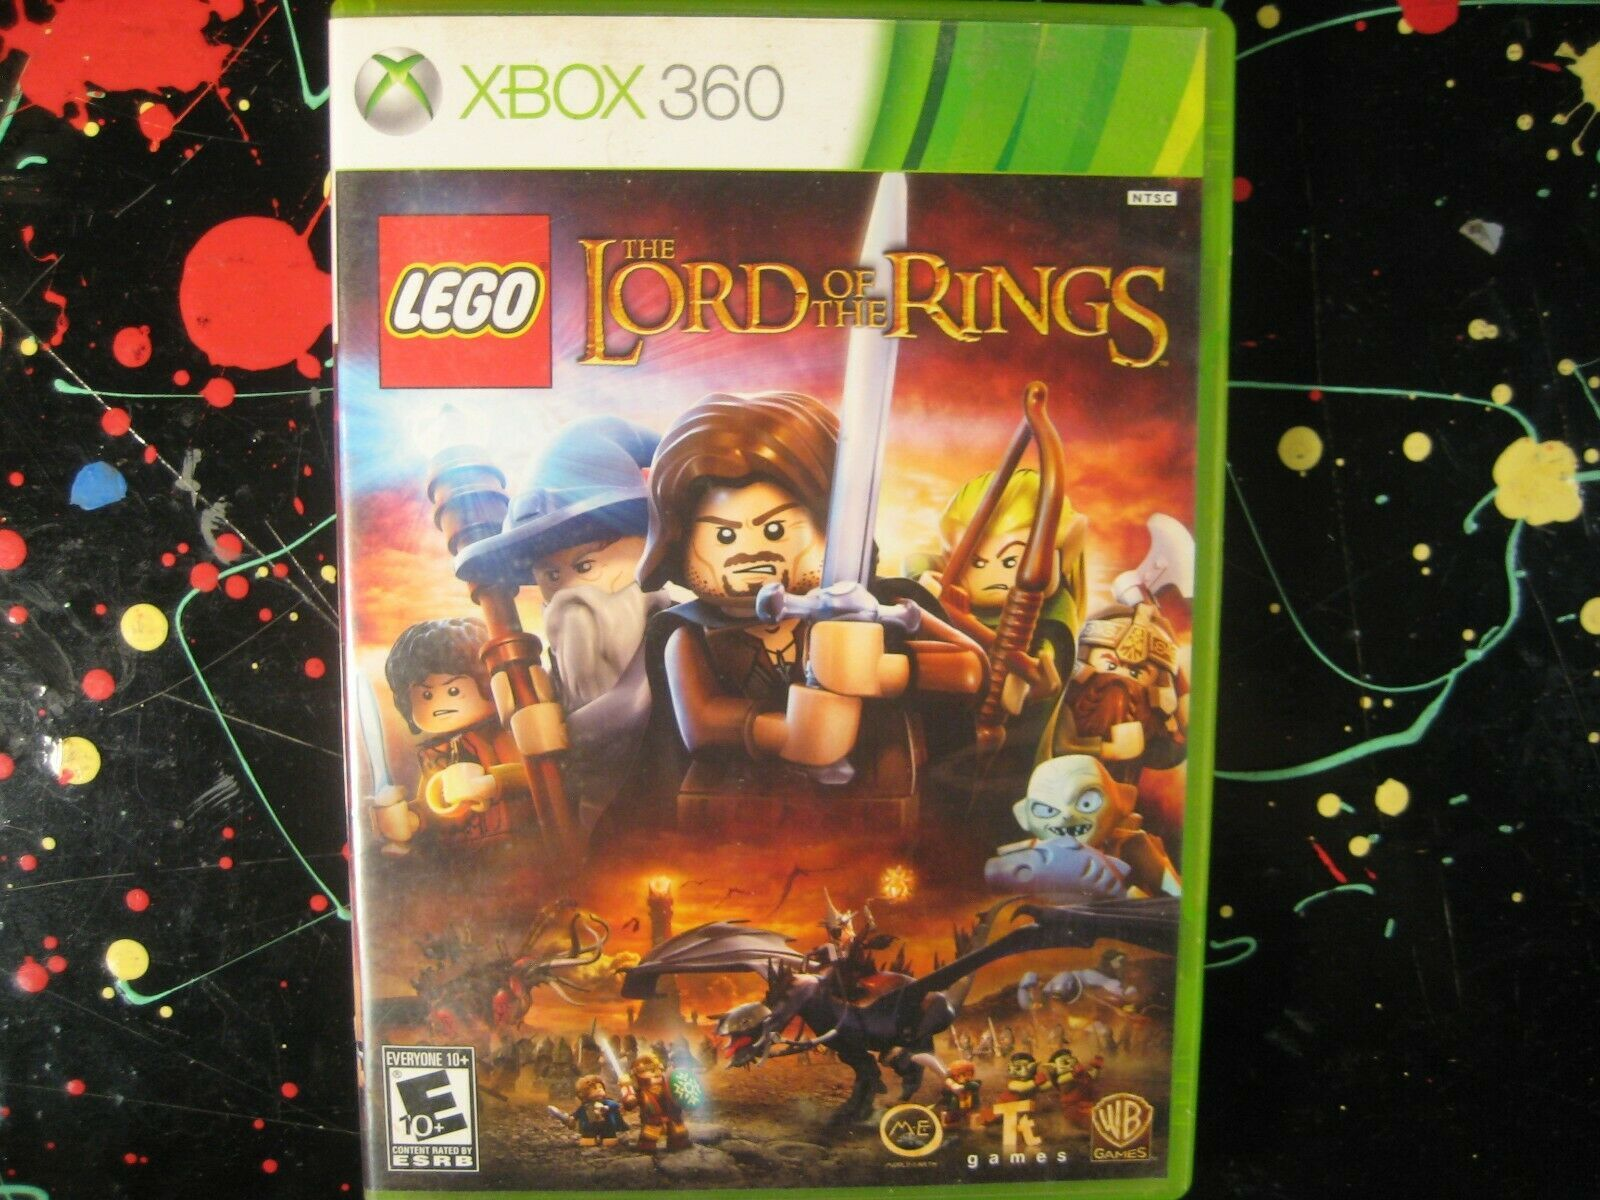 Lego LOTR The Lord of the Rings Xbox 360 Adventure Game - $13.75